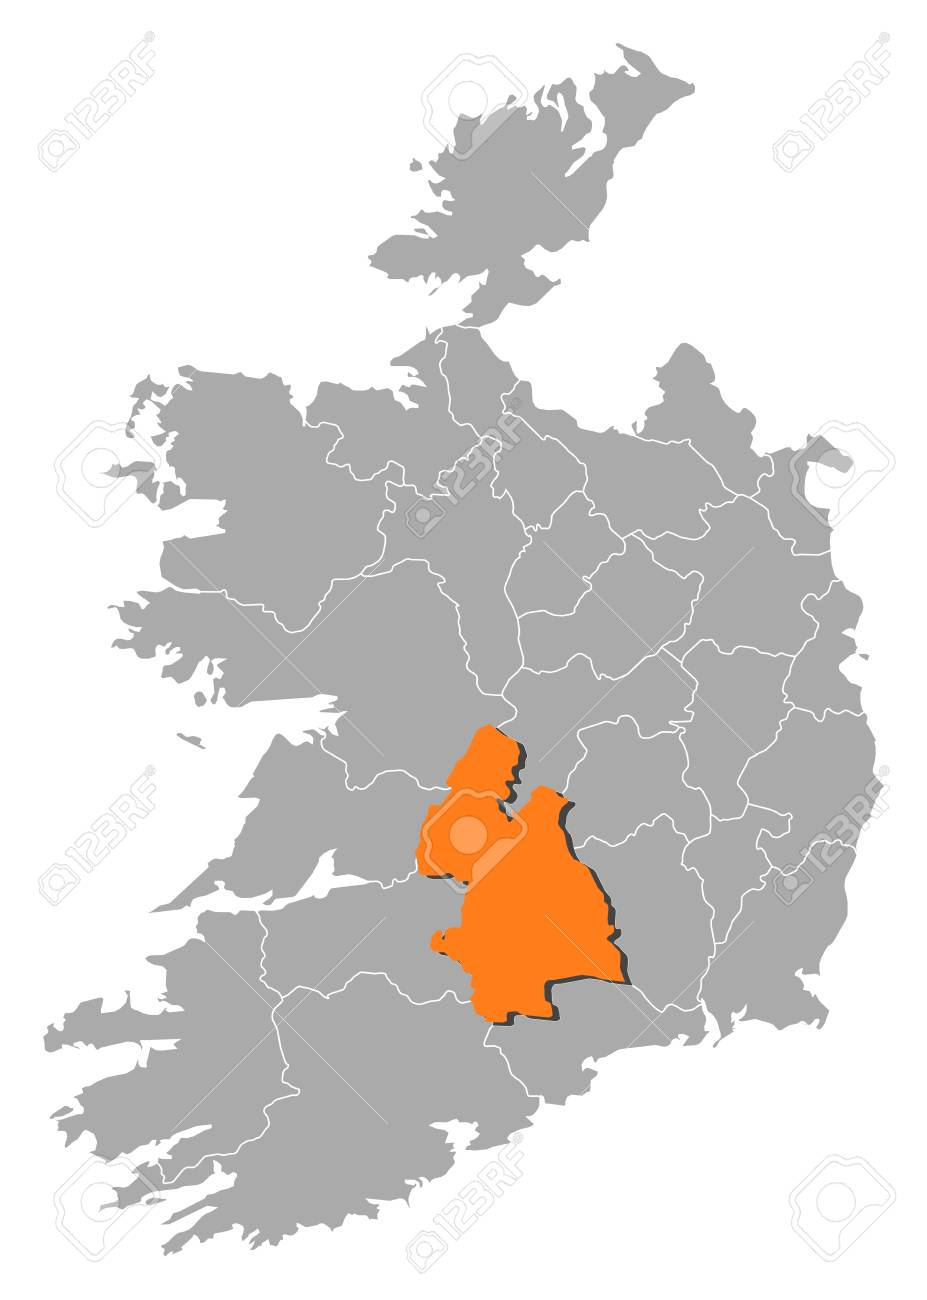 Map Of Ireland With The Provinces Tipperary Is Highlighted By